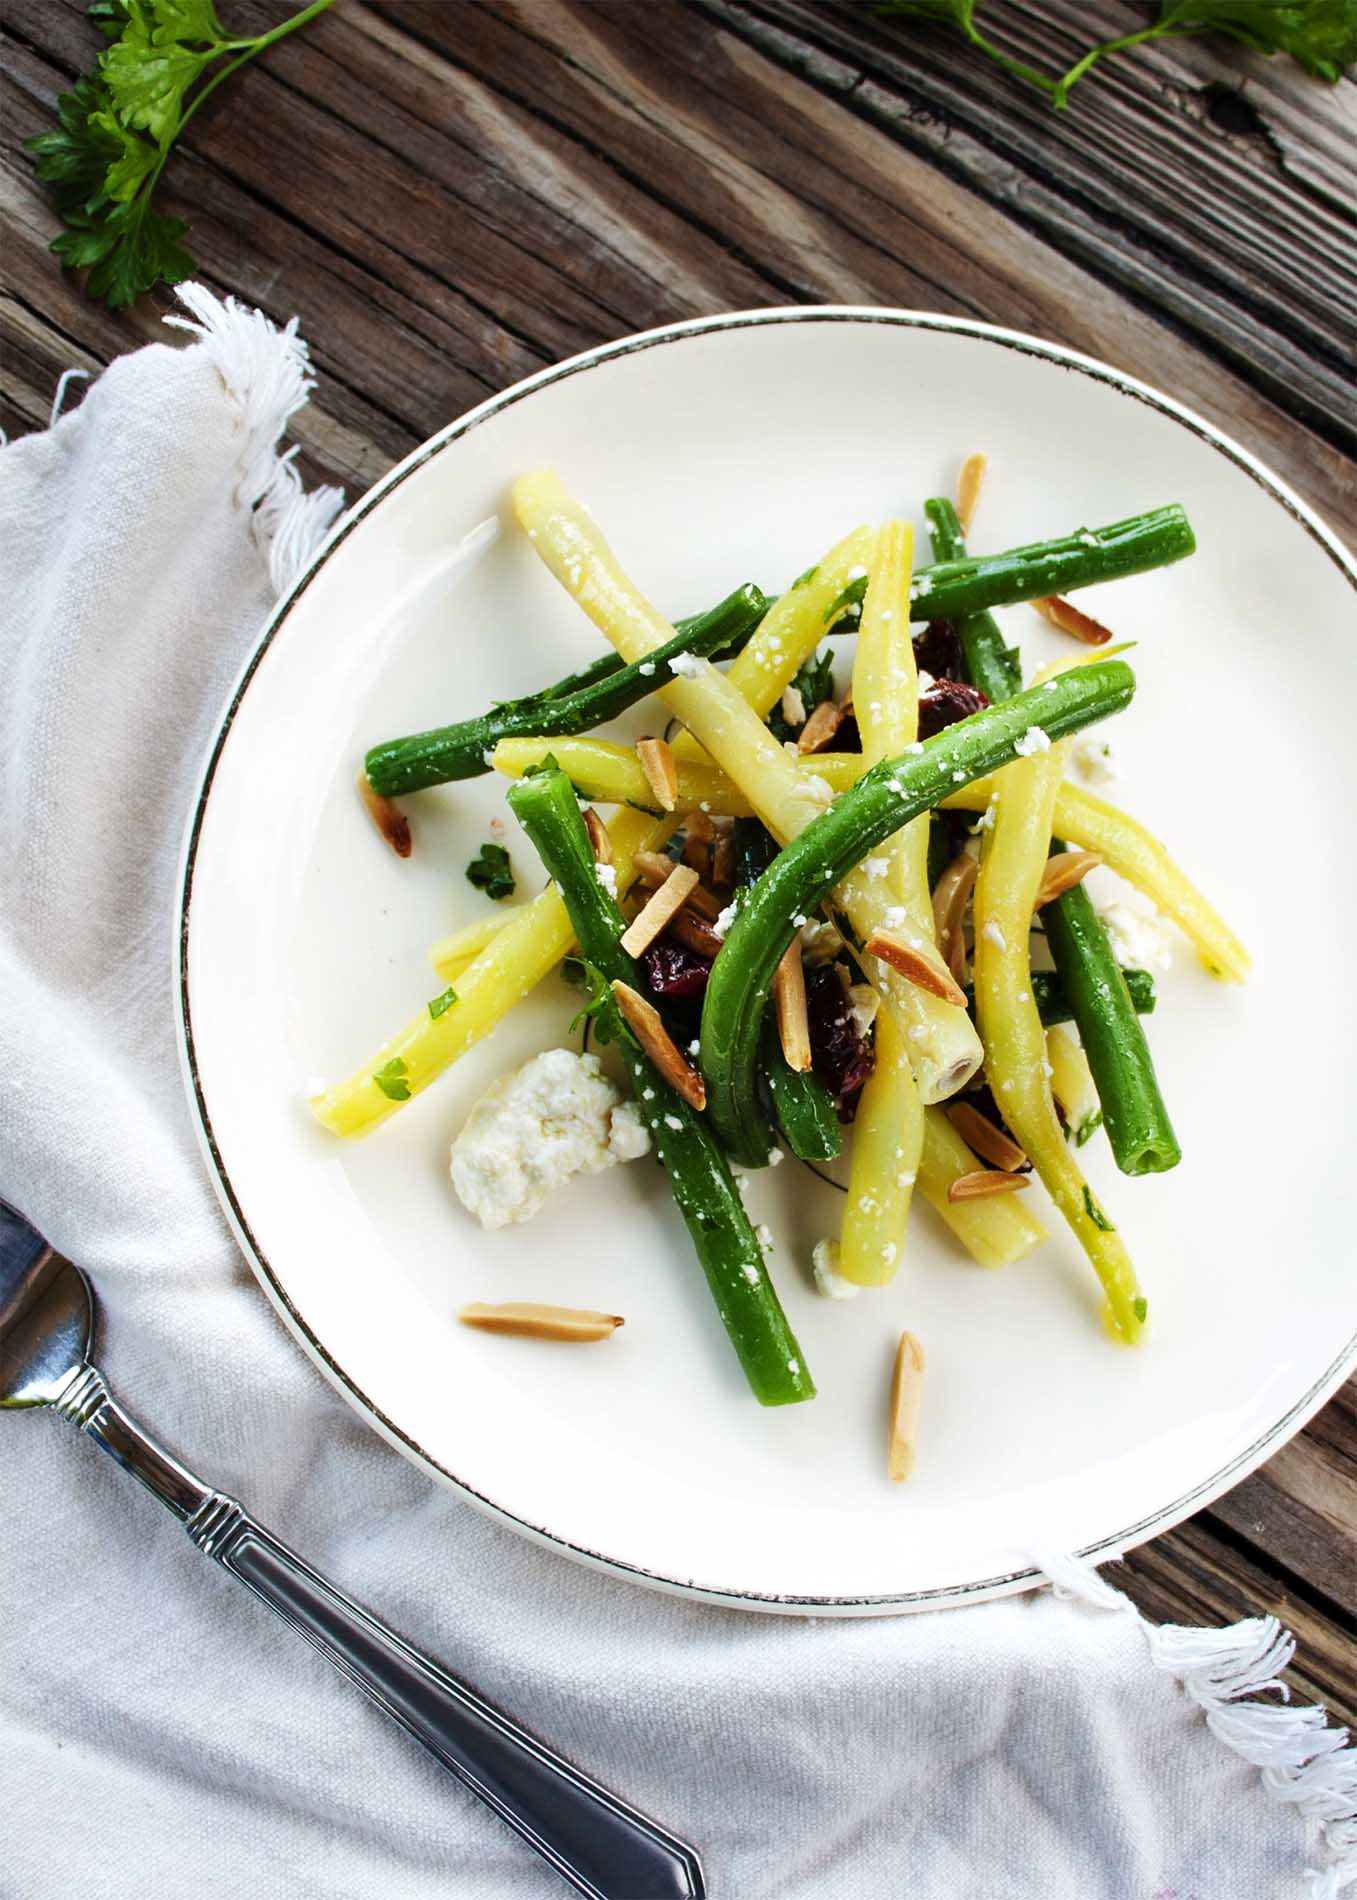 Green Bean Salad with Goat Cheese and Almonds - This salad is the perfect balance of sweet, salty, and crunchy, all combined with tender green beans. It's the only green bean salad you will ever need. | justalittlebitofbacon.com